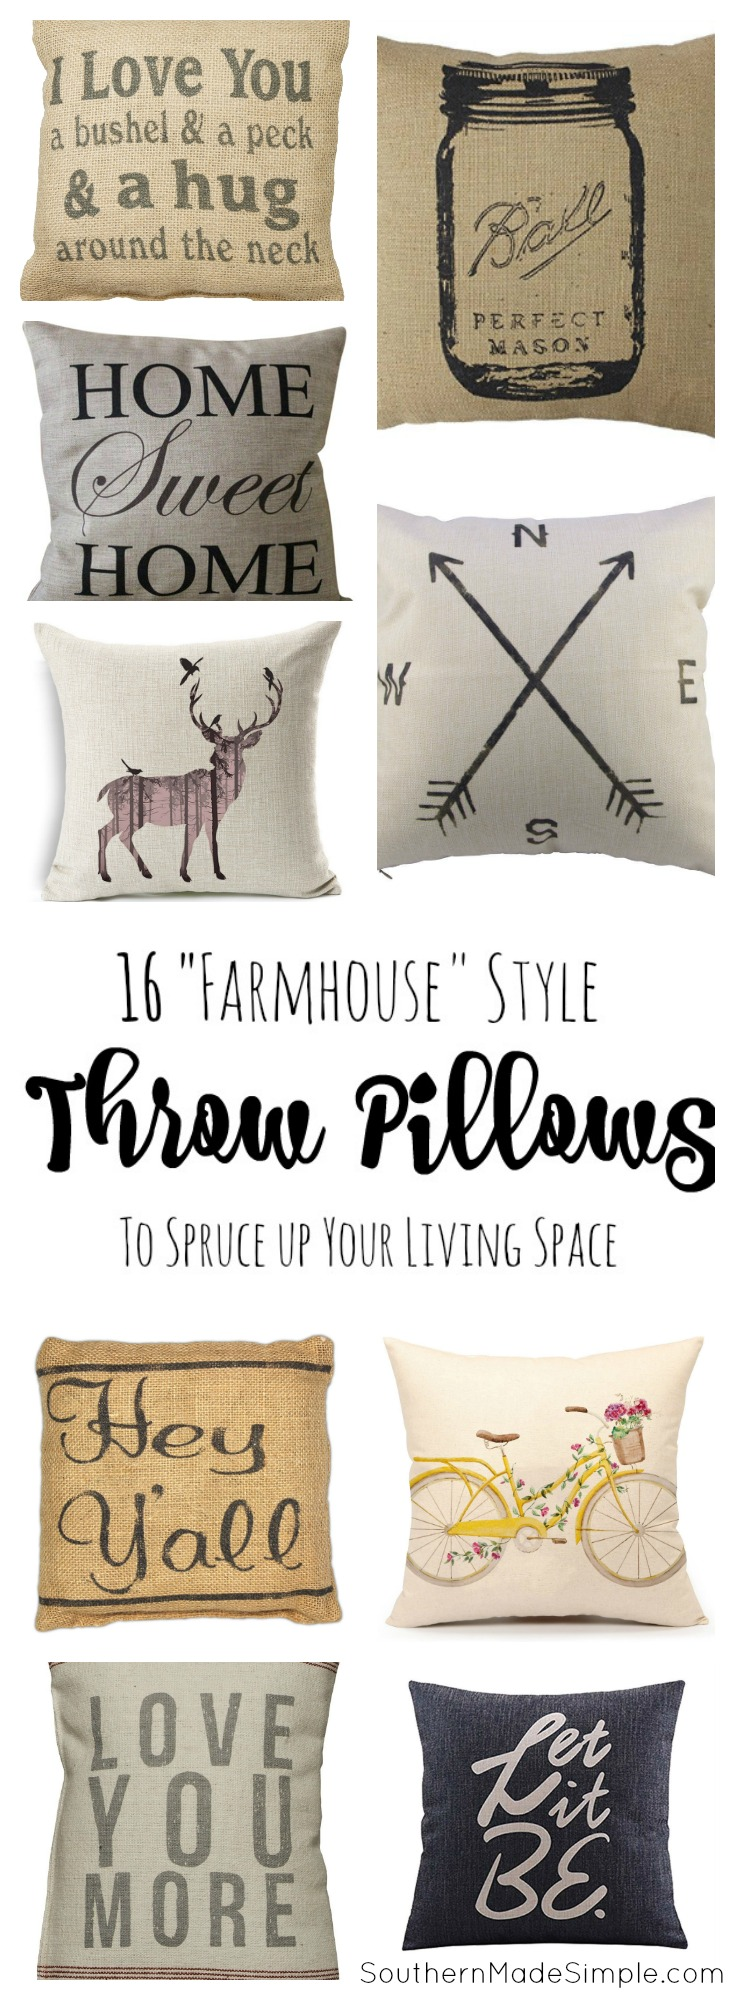 16 Farmhouse Style Throw Pillows to Spruce up your living space - all available on Amazon!